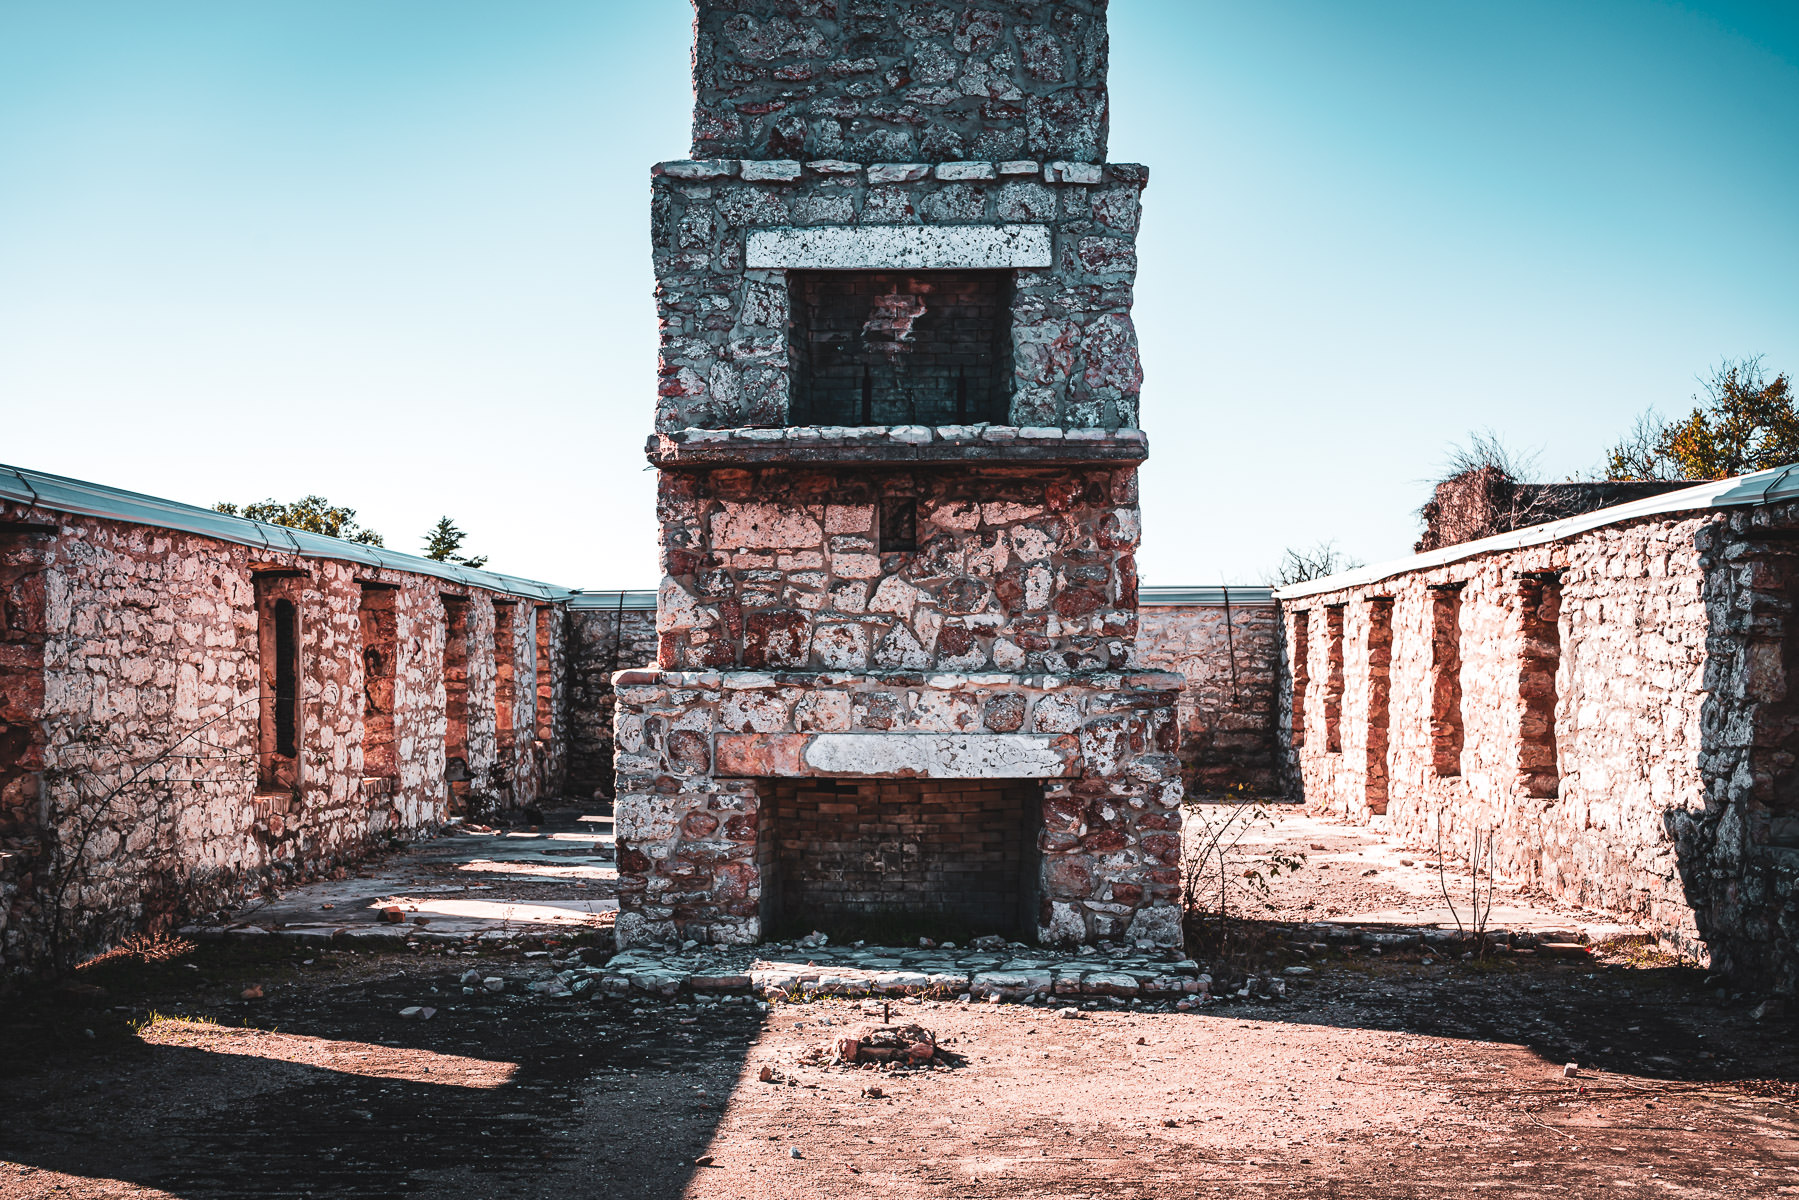 Ruins of a multi-level fireplace at Oklahoma's Fort Washita.